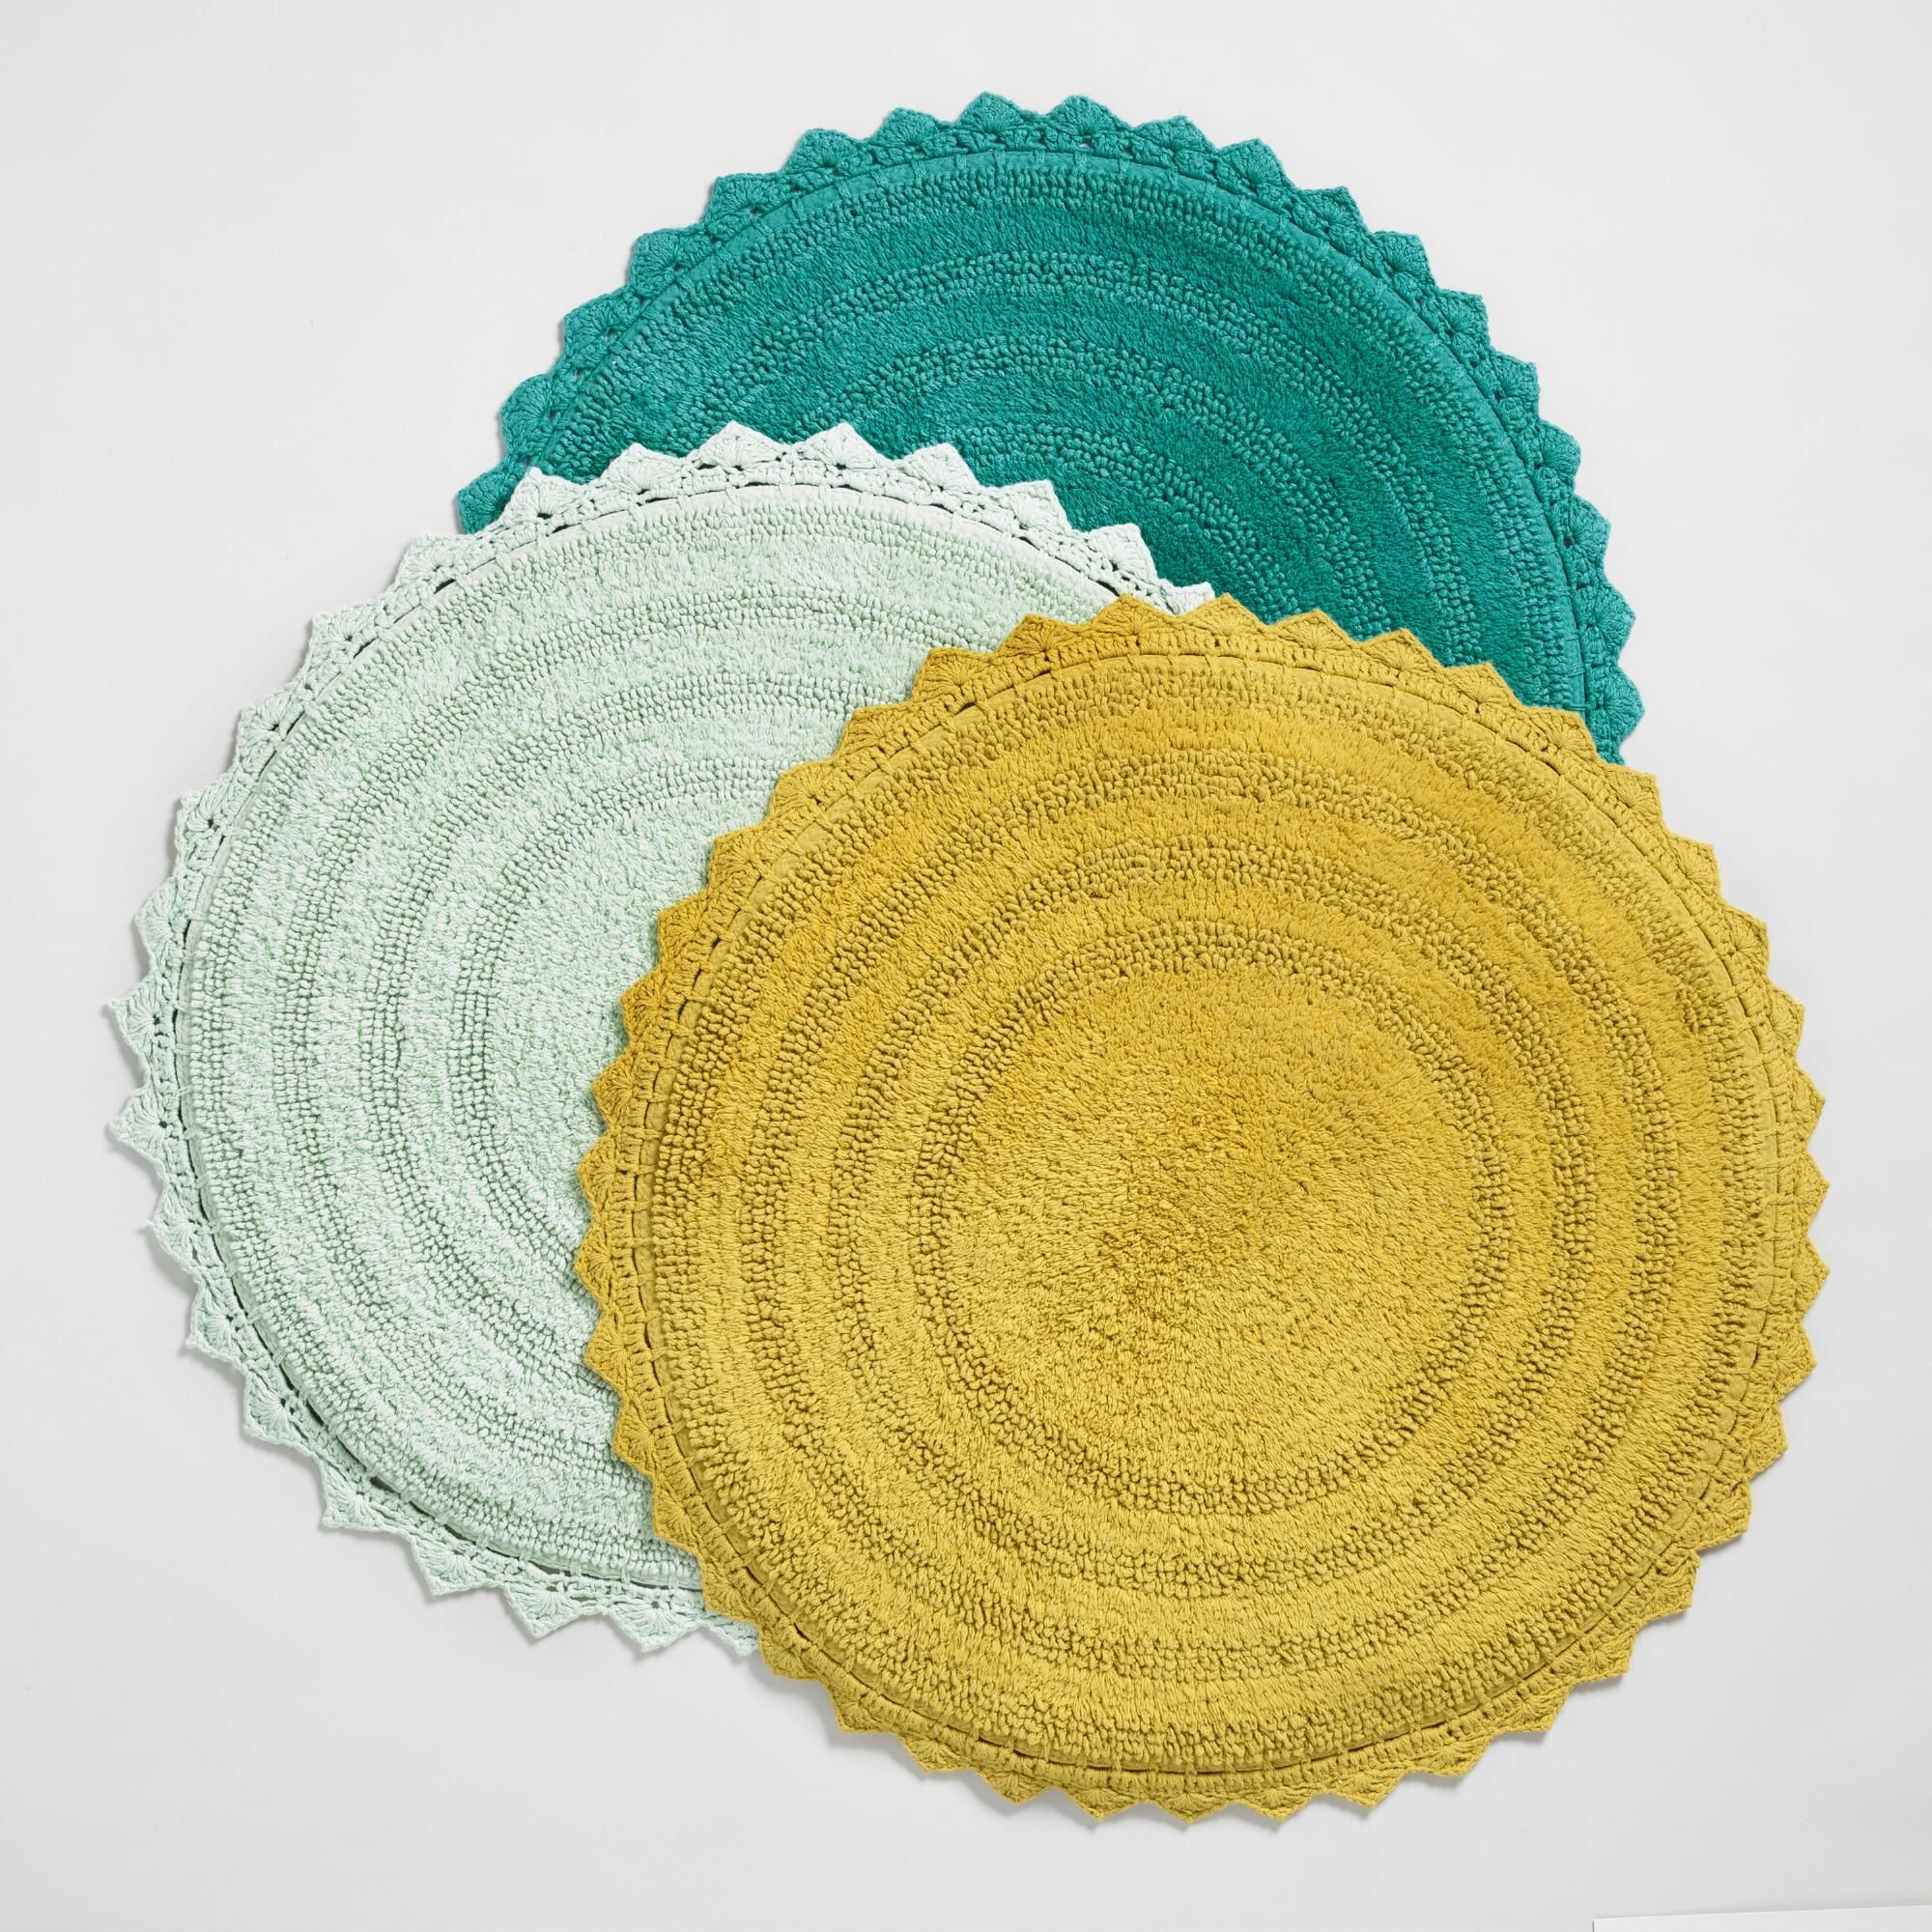 Finished With A Crocheted Border Our Exclusive Cotton Bath Mat Is